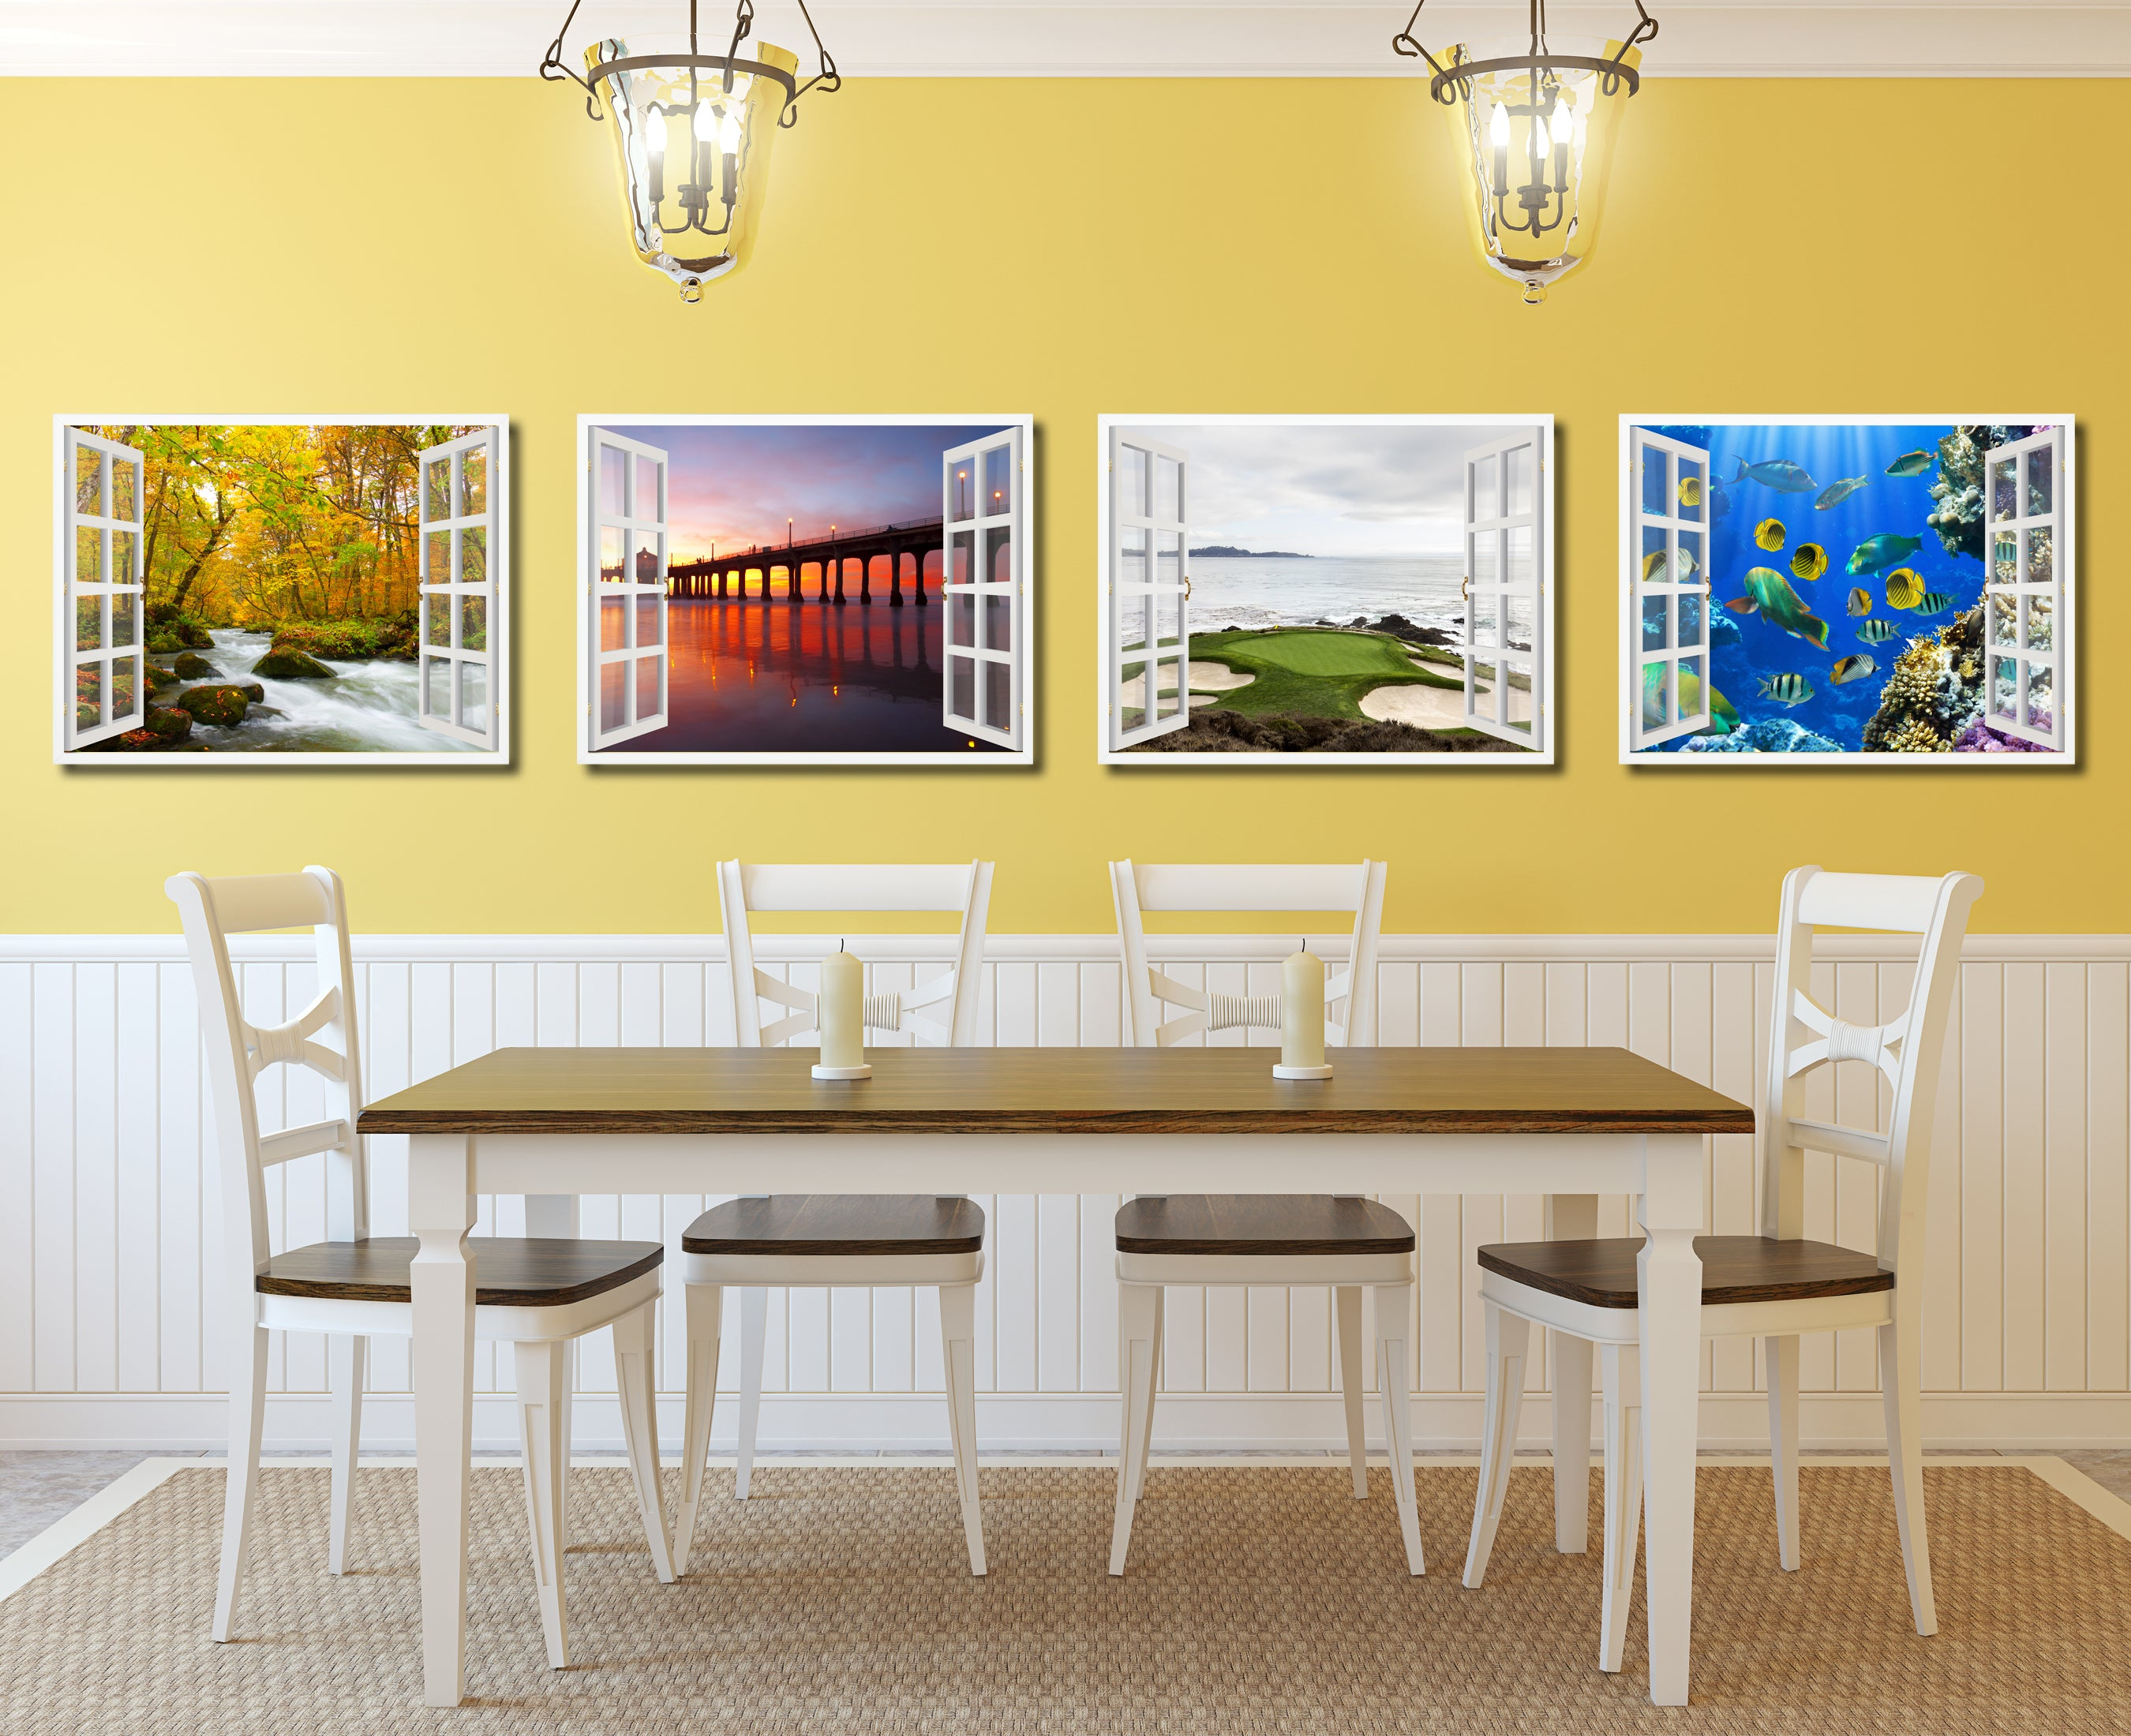 Manhattan Beach California Sunset View Picture French Window Framed Canvas Print Home Decor Wall Art Collection